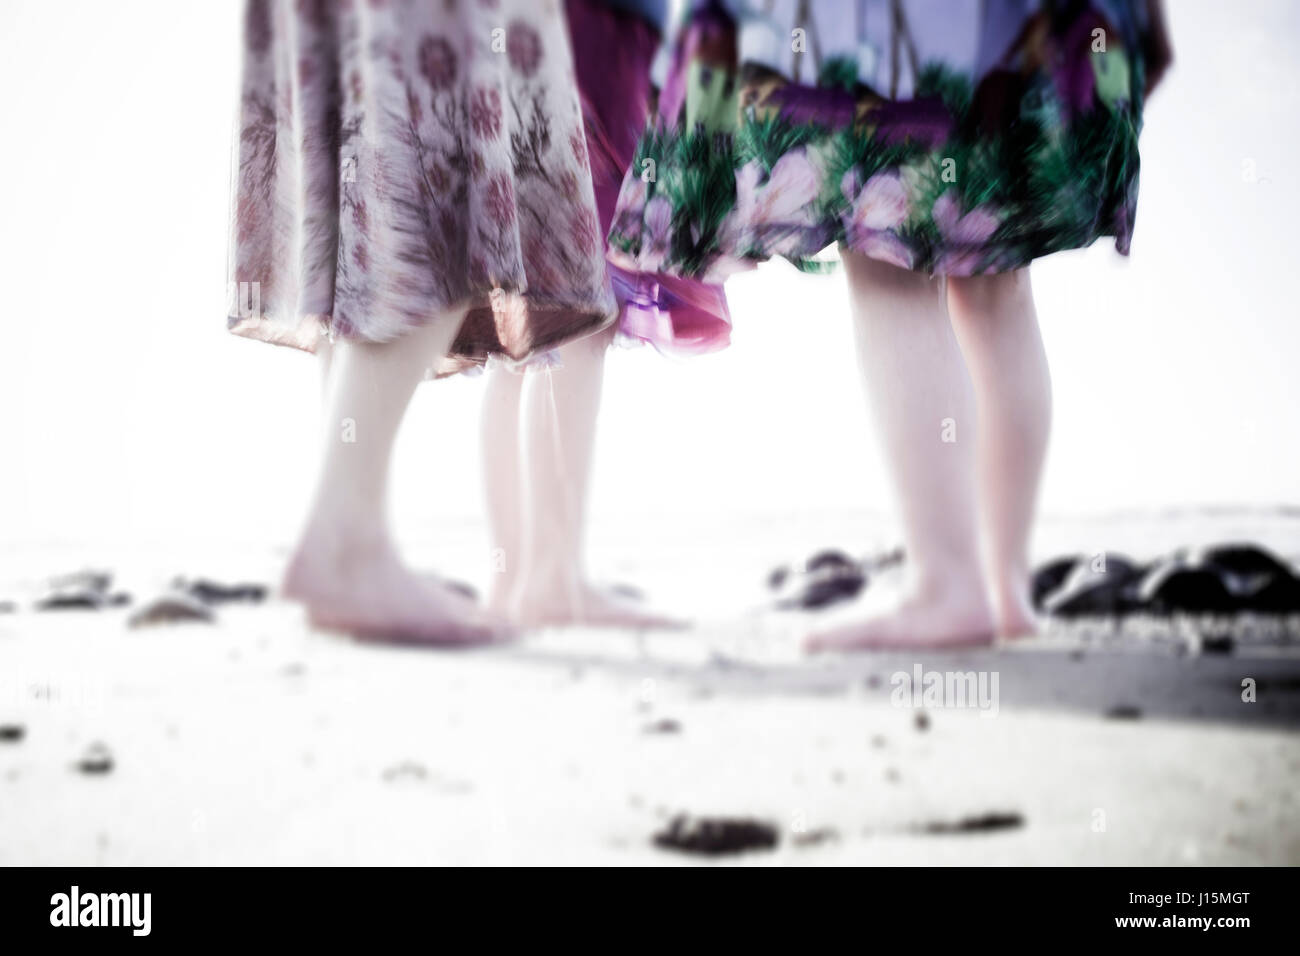 3 girls stand on a beach at sundown wearing cotton floral skirts and paddling on the edge of the shore. Movement - Stock Image